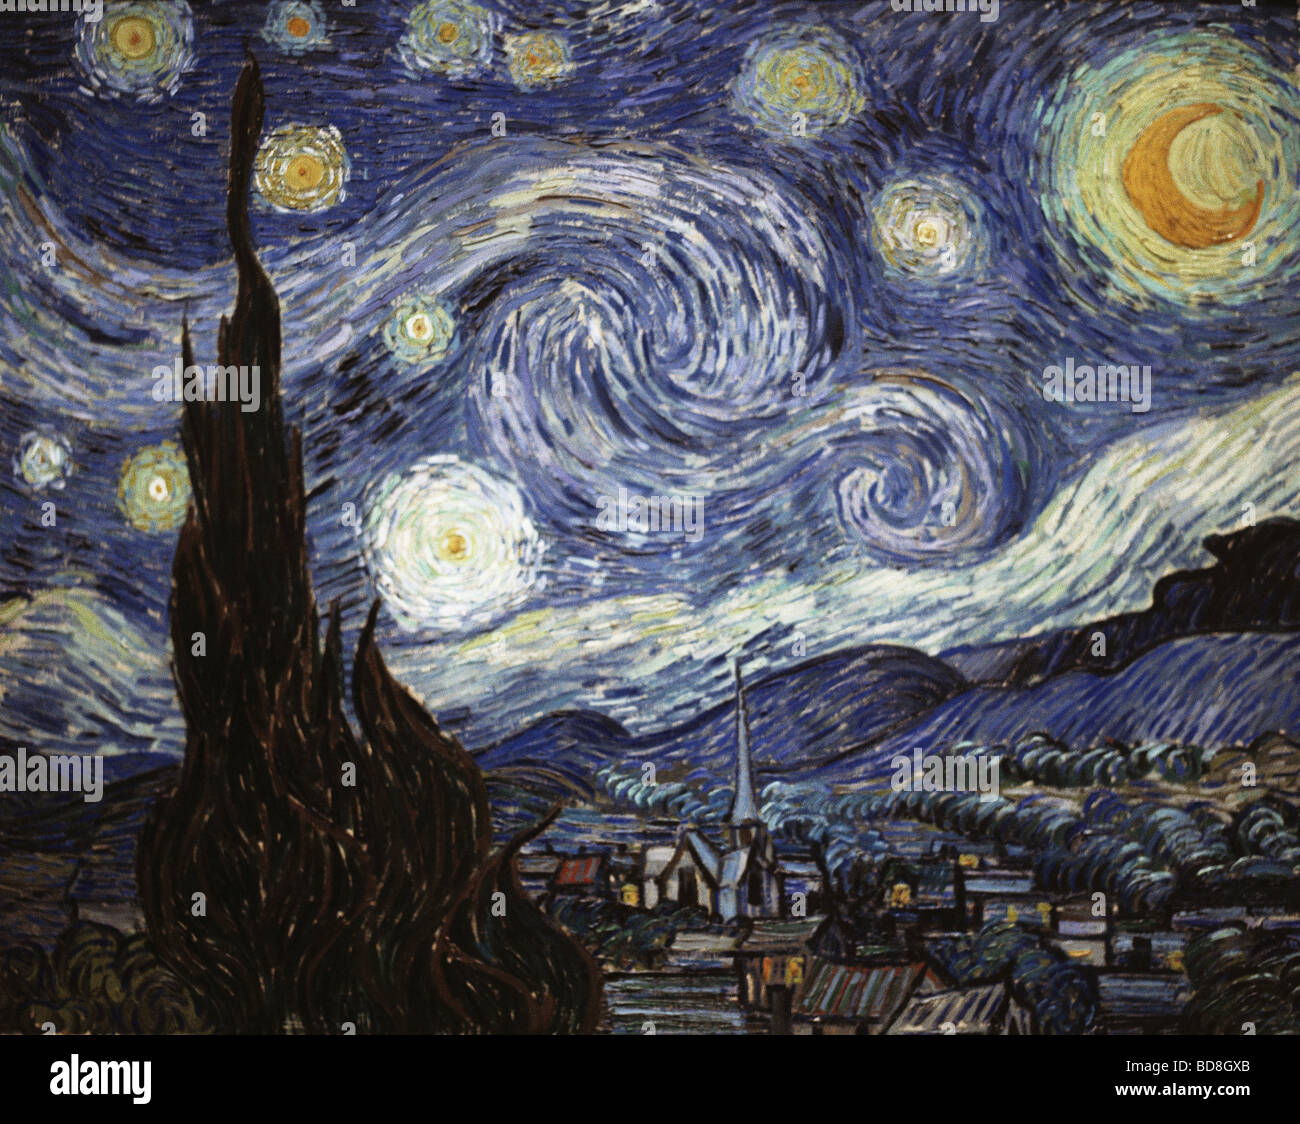 "fine arts, Gogh, Vincent van, (1853 - 1890), painting, ""The Starry Night"", oil on canvas, 73 x 92 cm, 1889, National Stock Photo"